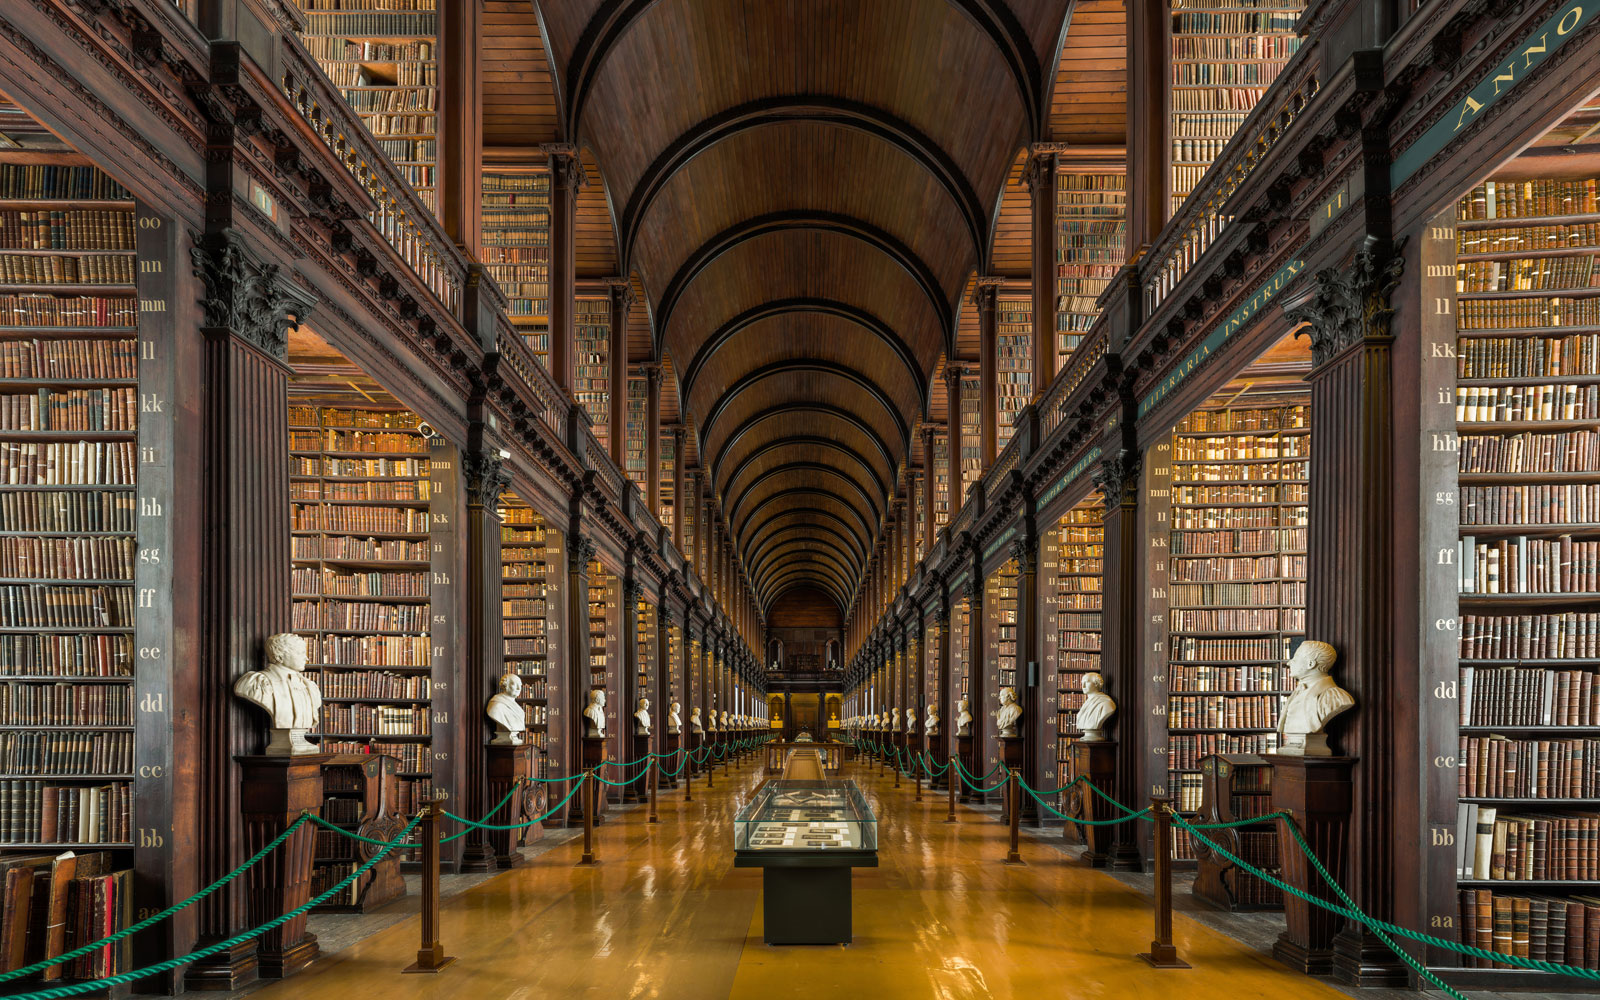 The Long Room of the Old Library at Trinity College Dublin (PHOTO CREDIT: David Iliff. License: CC BY-SA 3.0